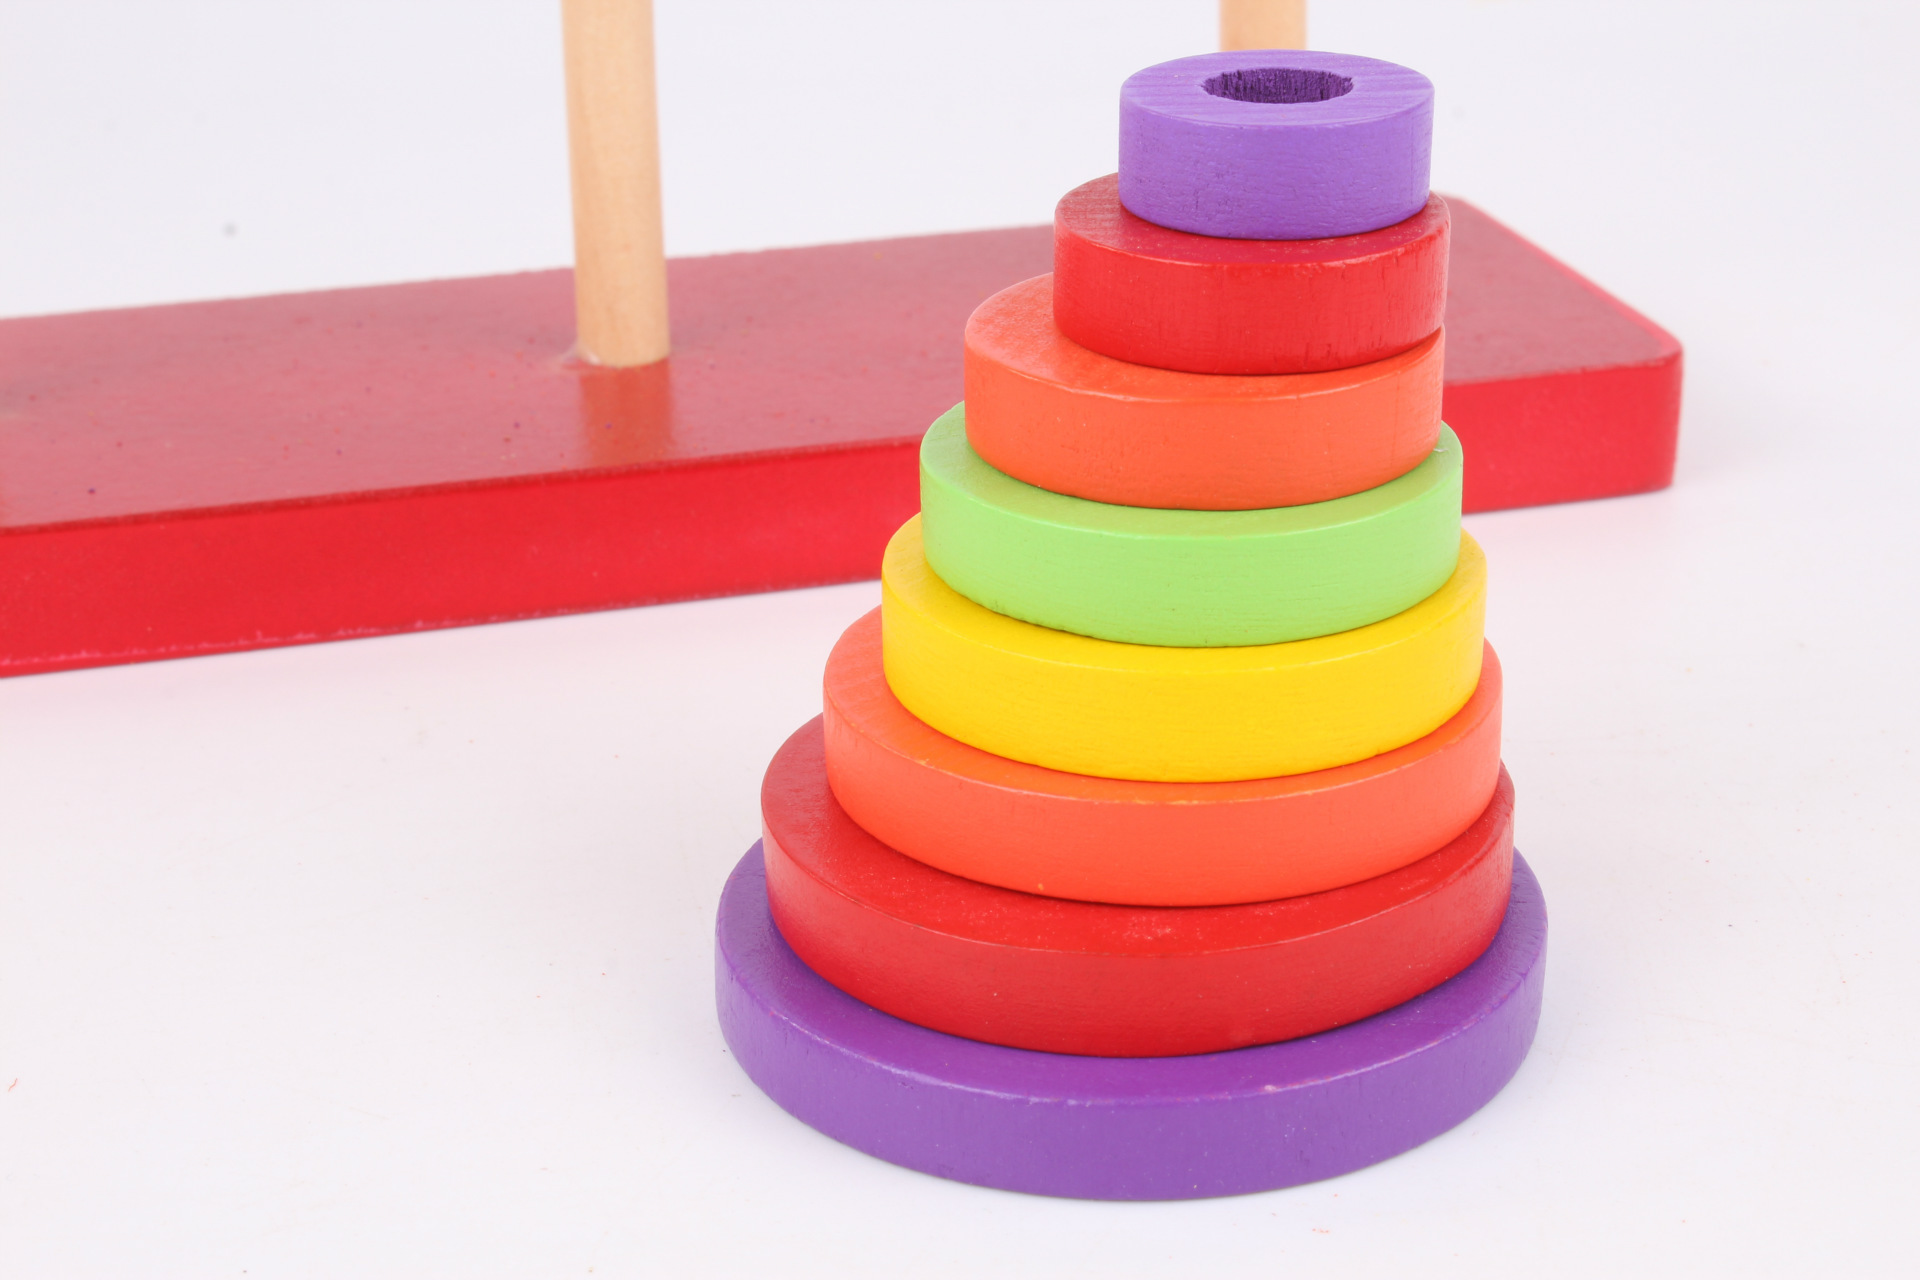 Tower of Hanoi Educational Toys Wooden Brahma Classic Math Puzzle